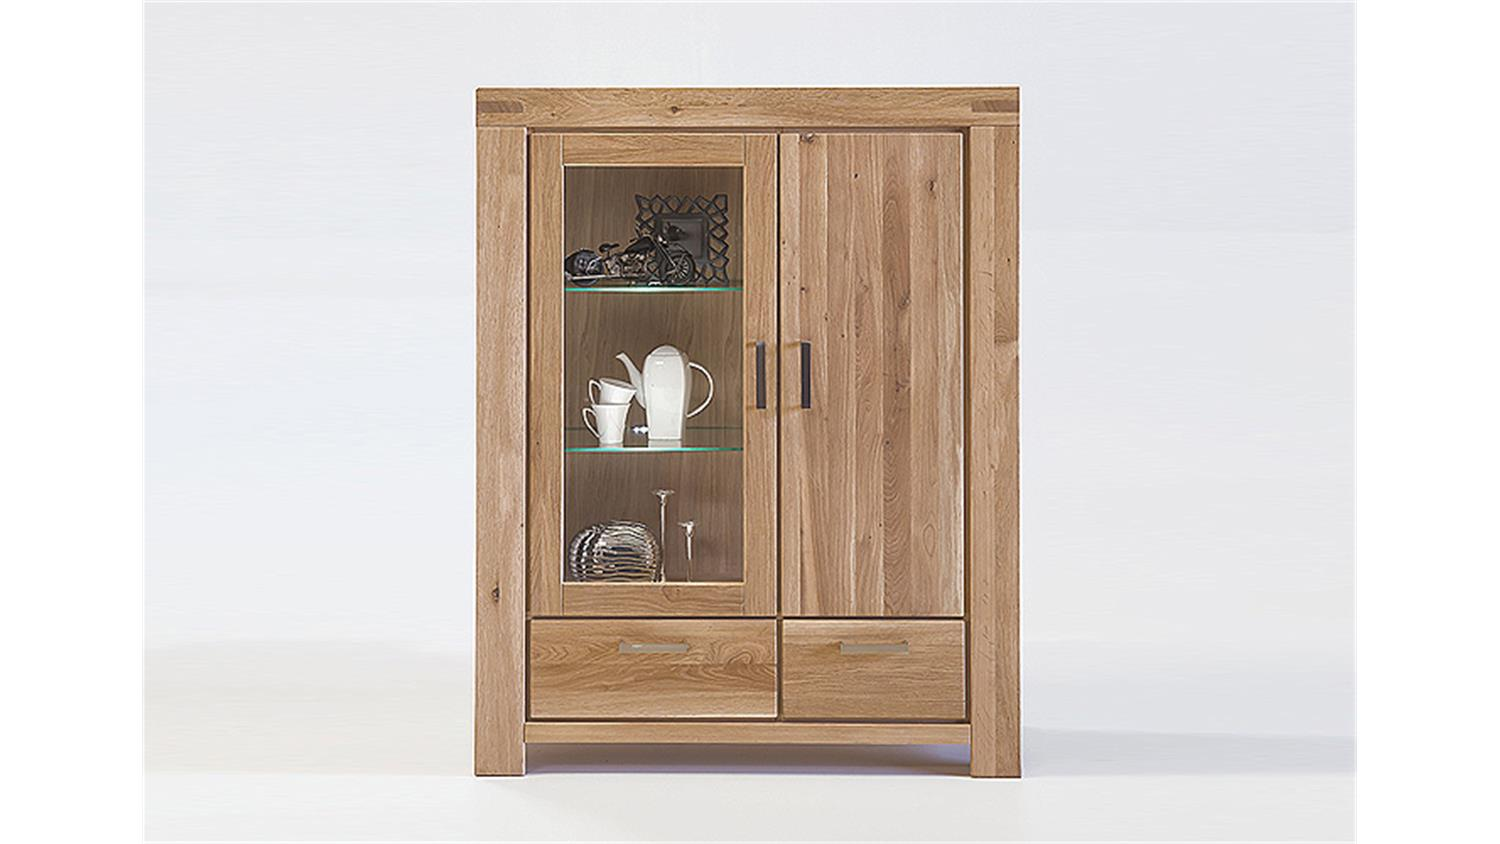 KIRA Buffet Schrank in Wildeiche massiv Bianco